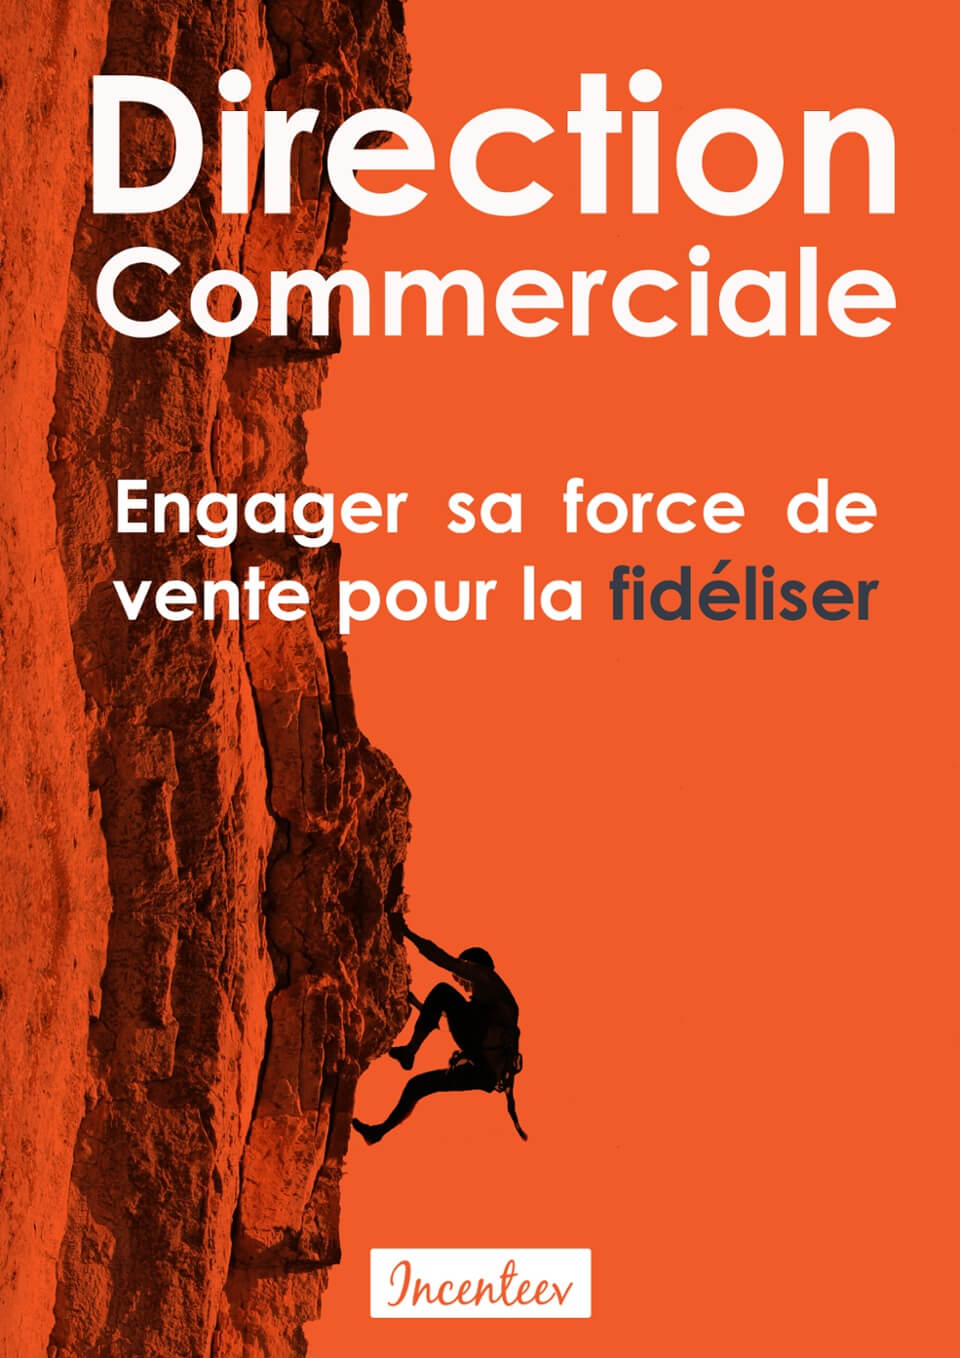 Cover Ebook Engagement Fidelisation.jpg